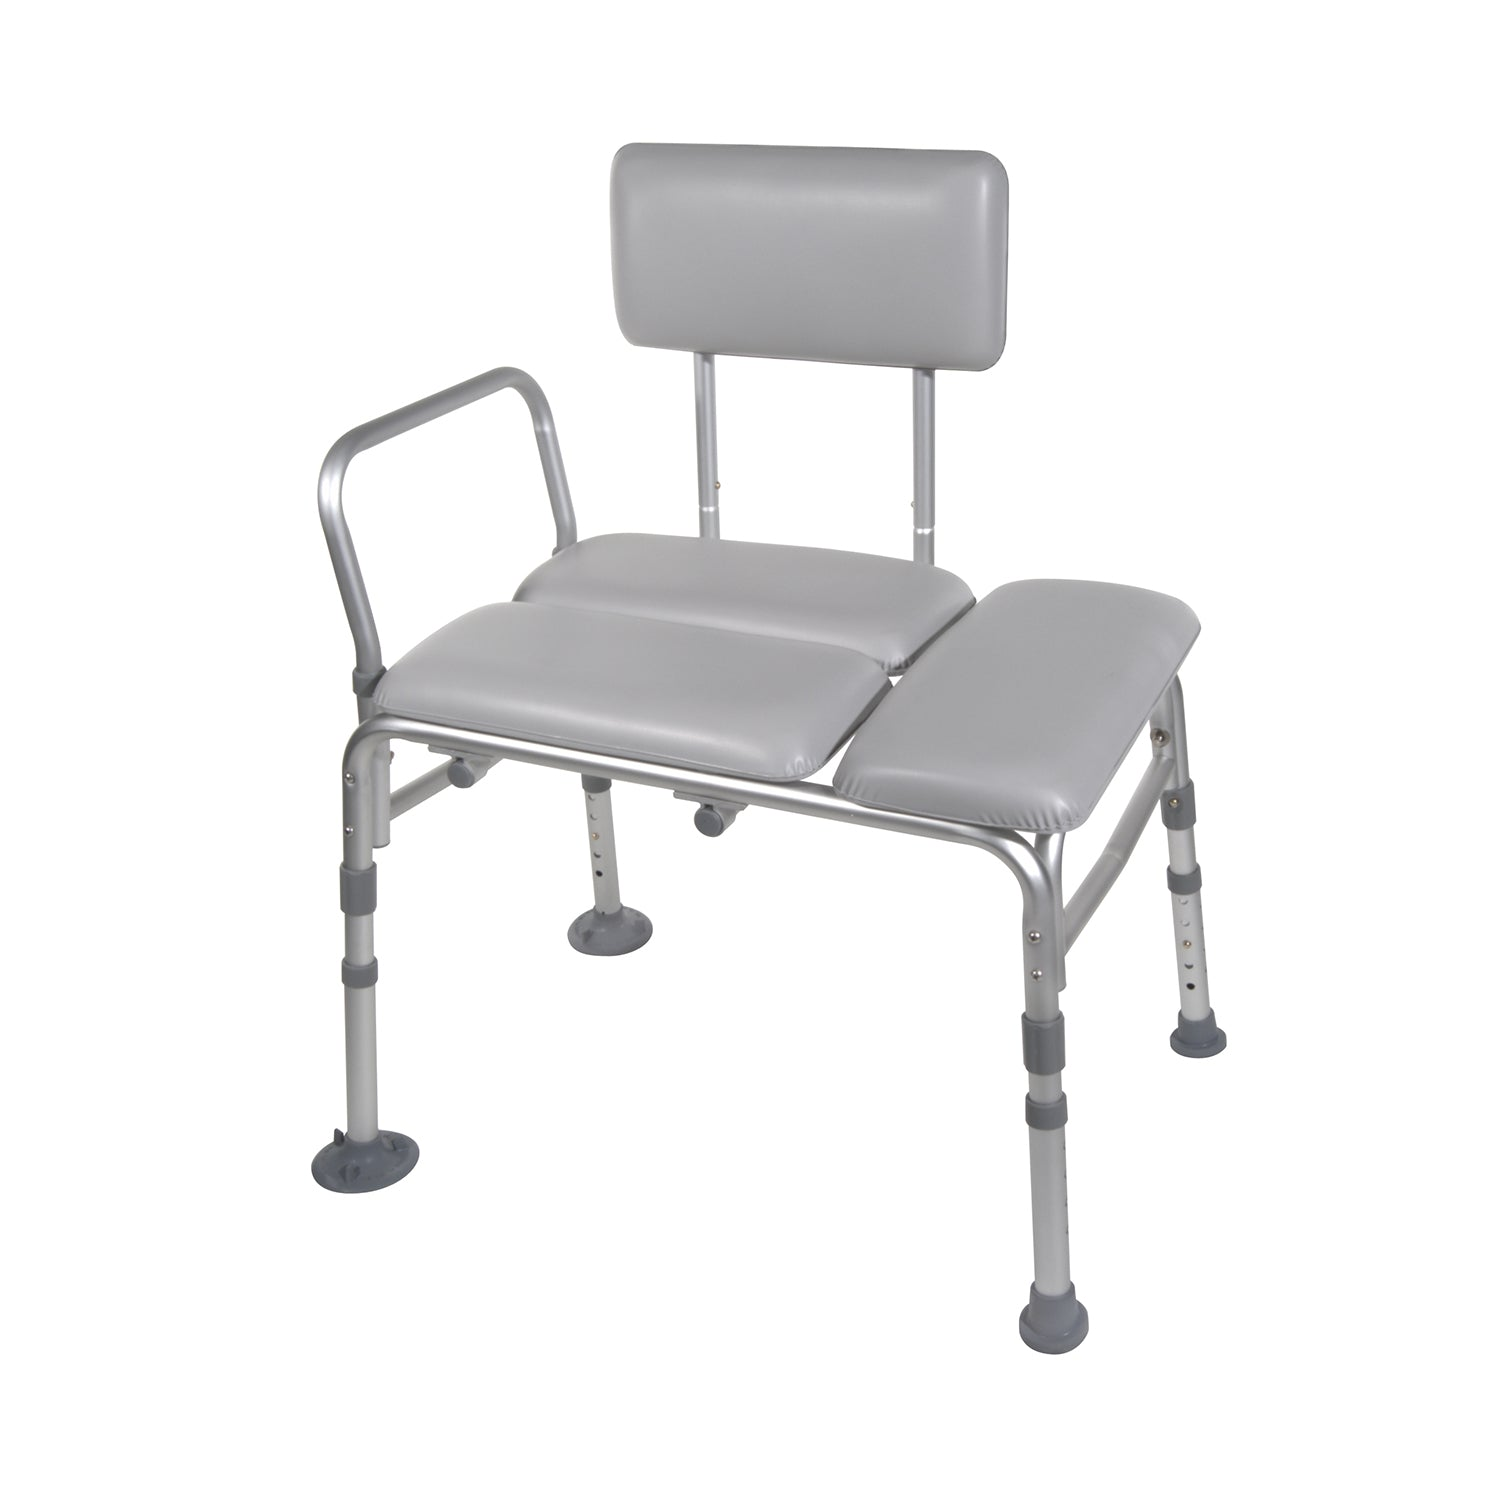 Drive Padded Seat Transfer Bench-Commode Opening